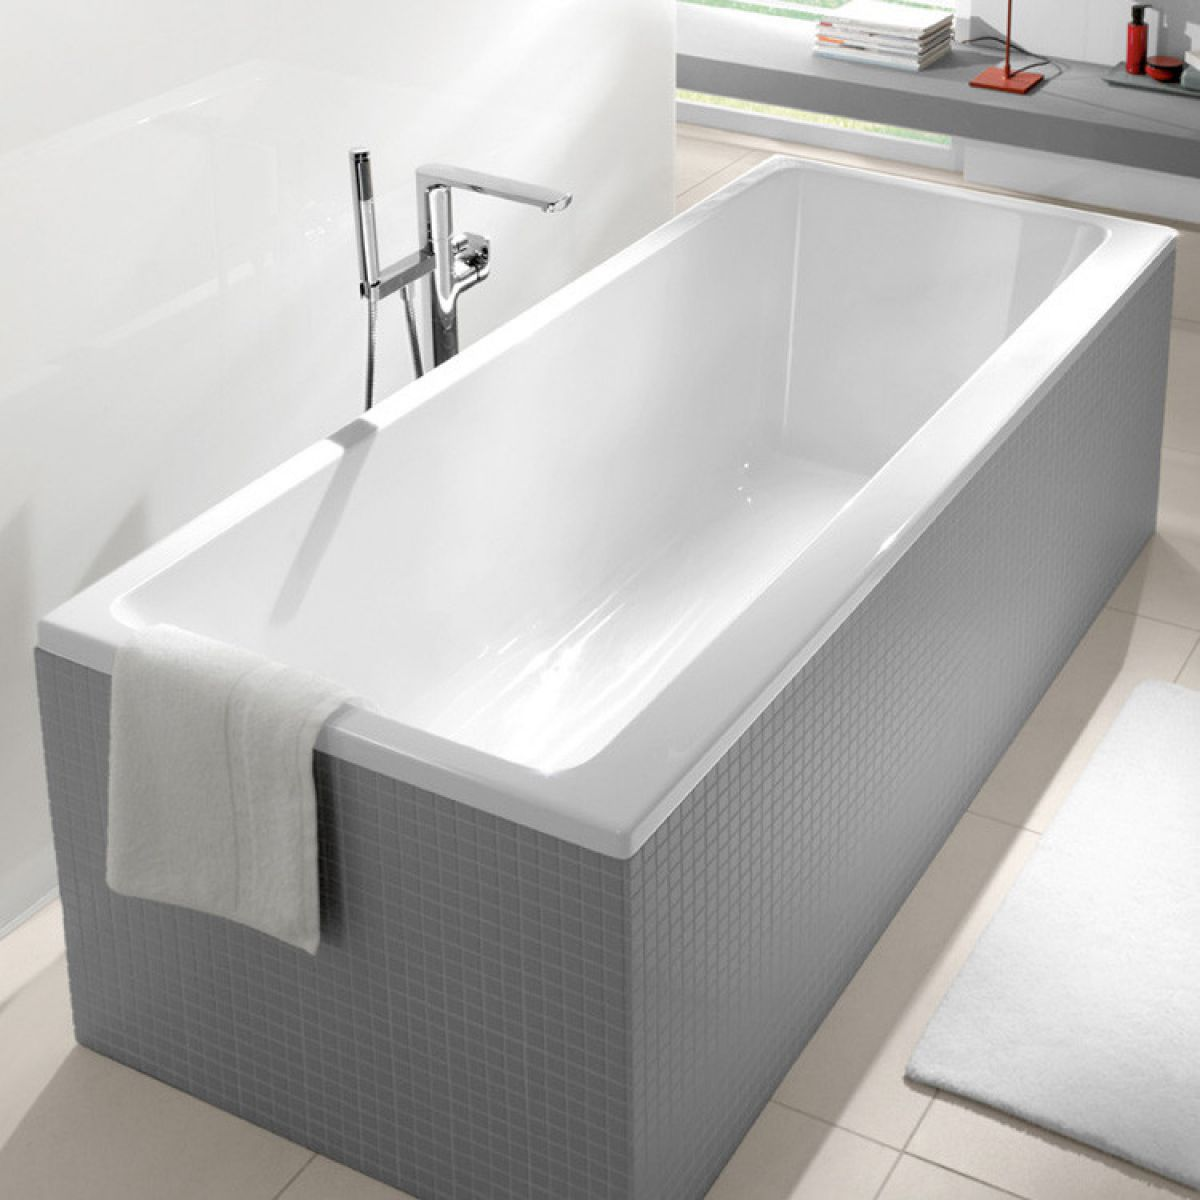 Villeroy and boch subway duo rectangular bath uk bathrooms for Bosch and villeroy